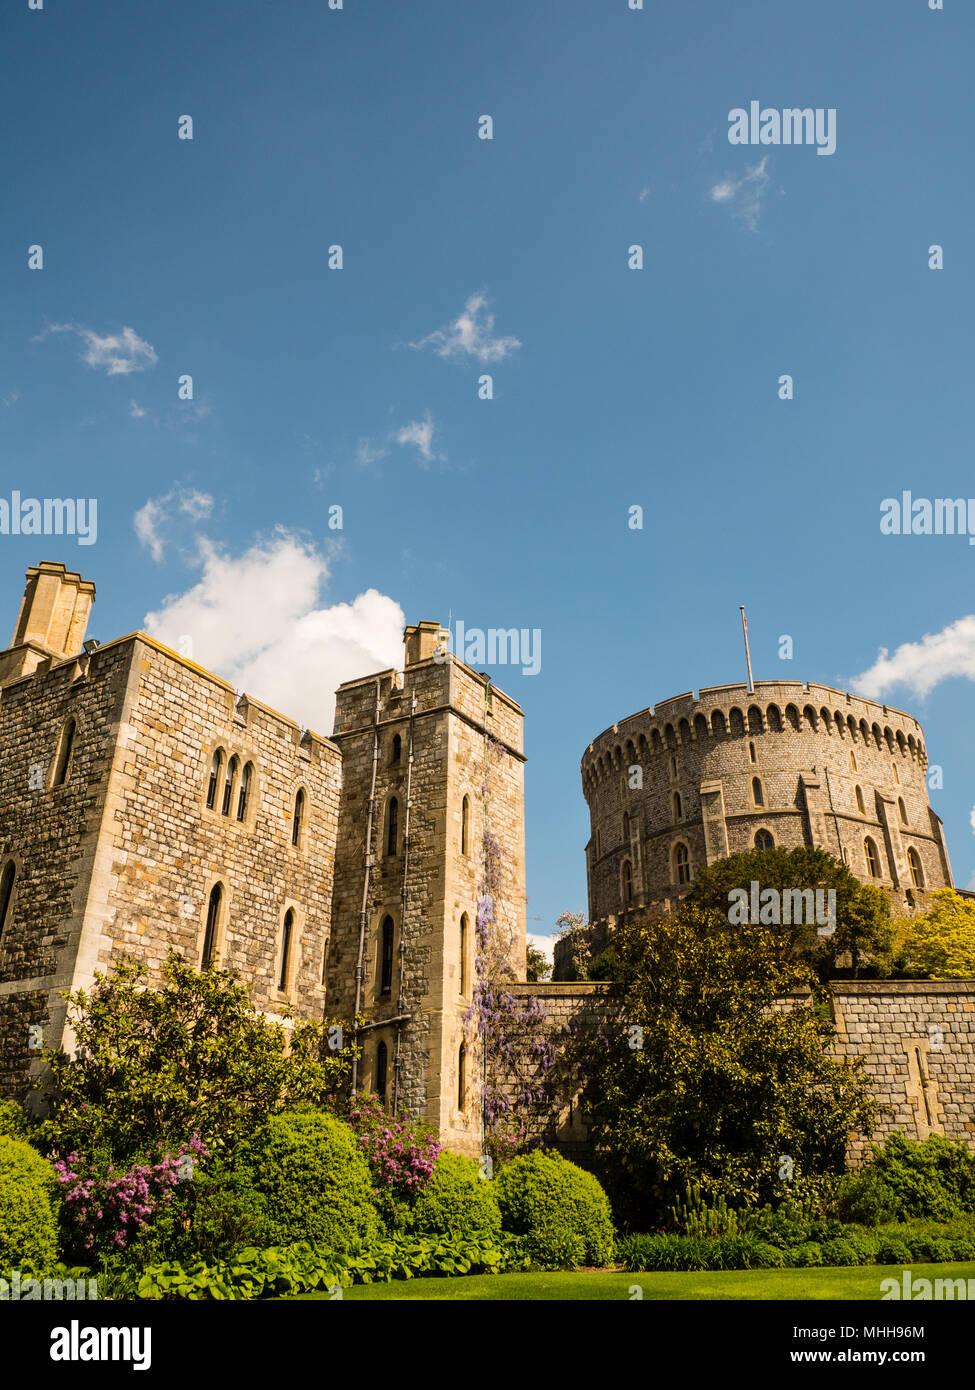 Henry III Tower, and Round Tower (The Keep), Windsor Castle, Windsor, Berkshire, England, UK, GB. - Stock Image